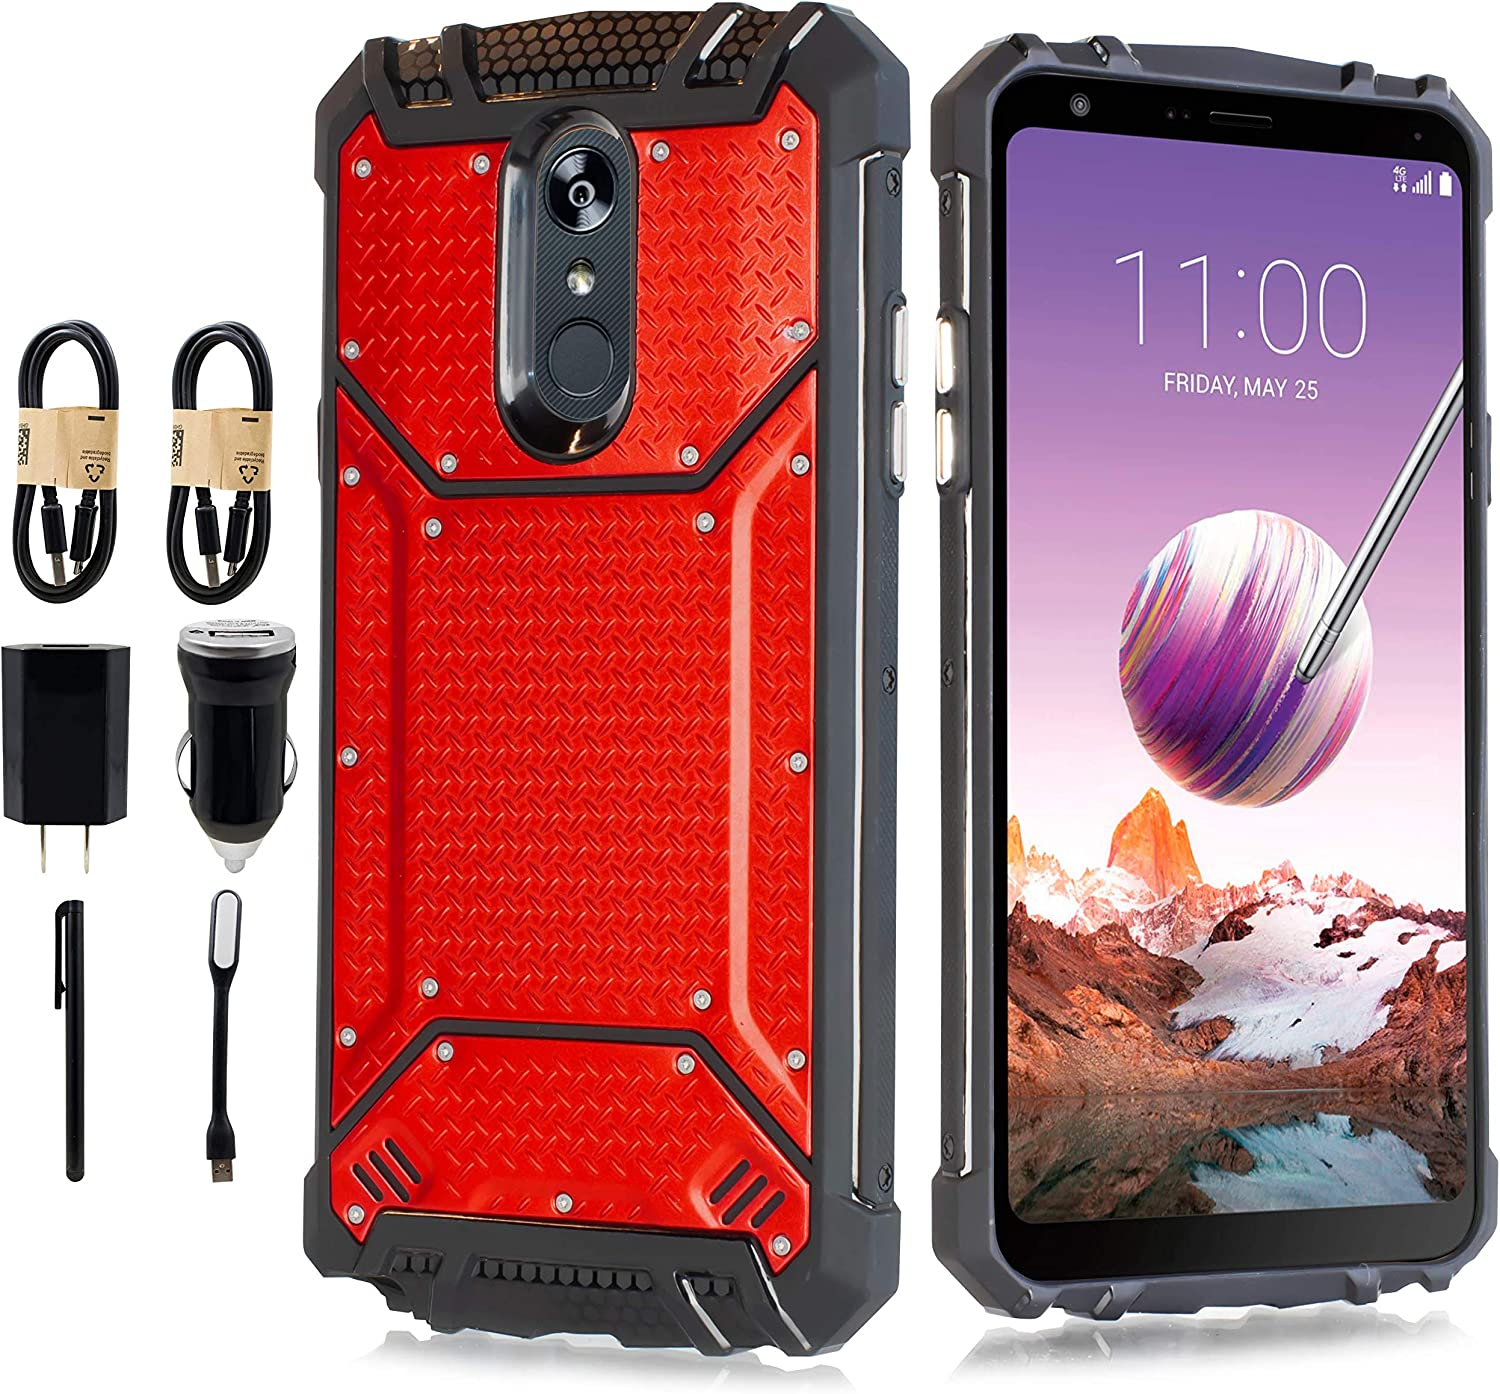 Case for LG Stylo 5 case, Aluminum Metal Premium Drop Protection Shockproof Military Phone Case Cover with Built-in Metal Plate Back [Accessory Pack] (Red)